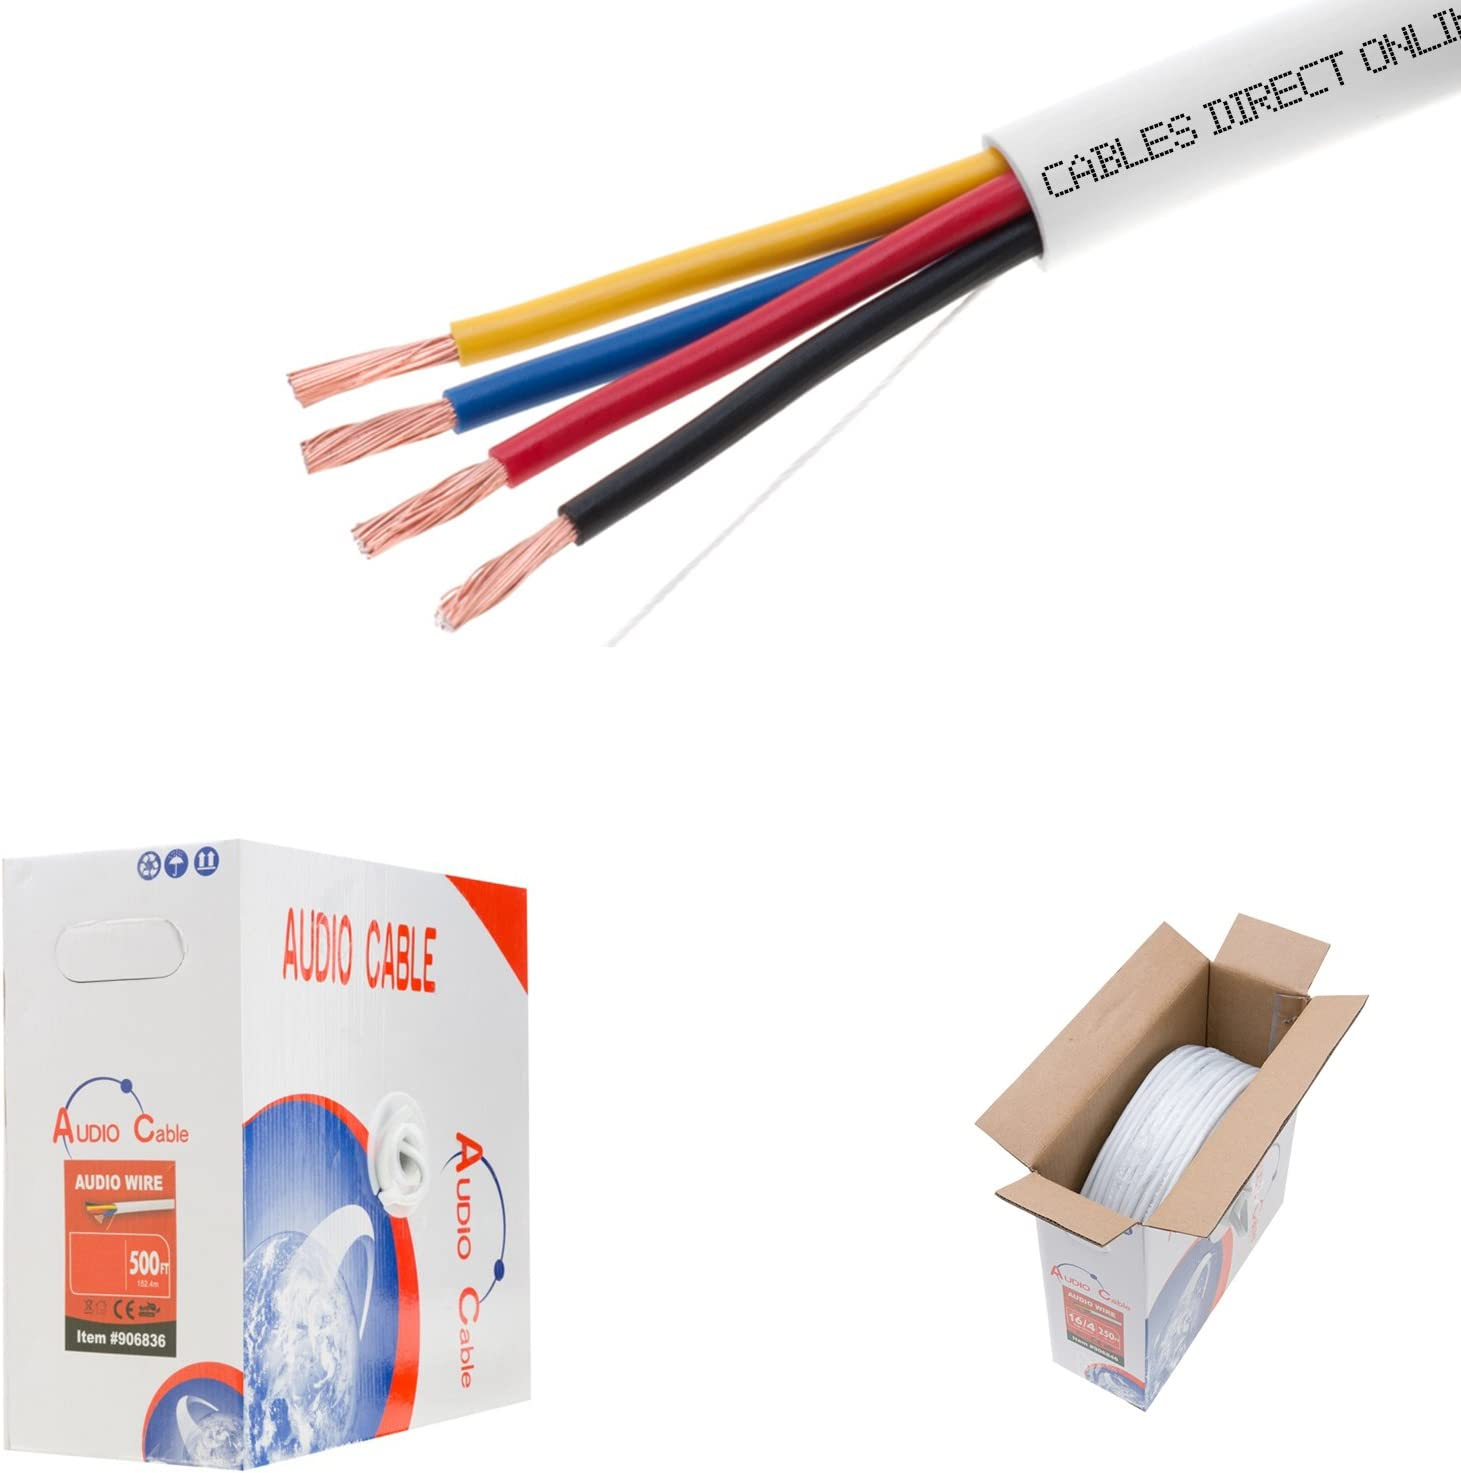 250ft 14AWG 4 Conductors (14/4) CL2 Rated Loud Speaker Cable Wire, Pull Box (for in-Wall Installation) (14AWG / 4 Conductors, 250ft)